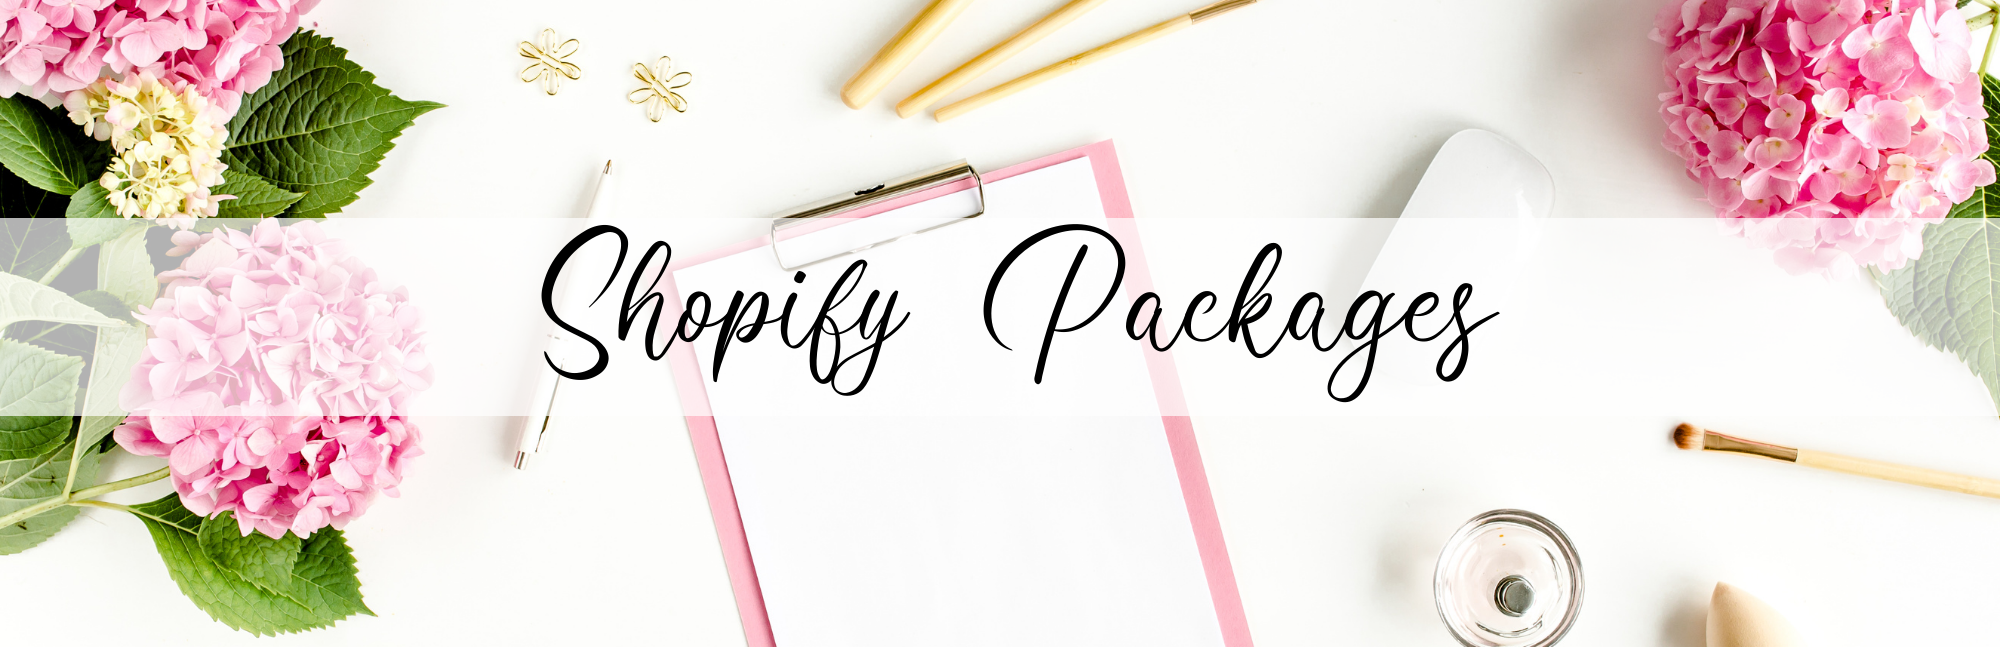 Shopify Setup Packages - Crystal J Chapman